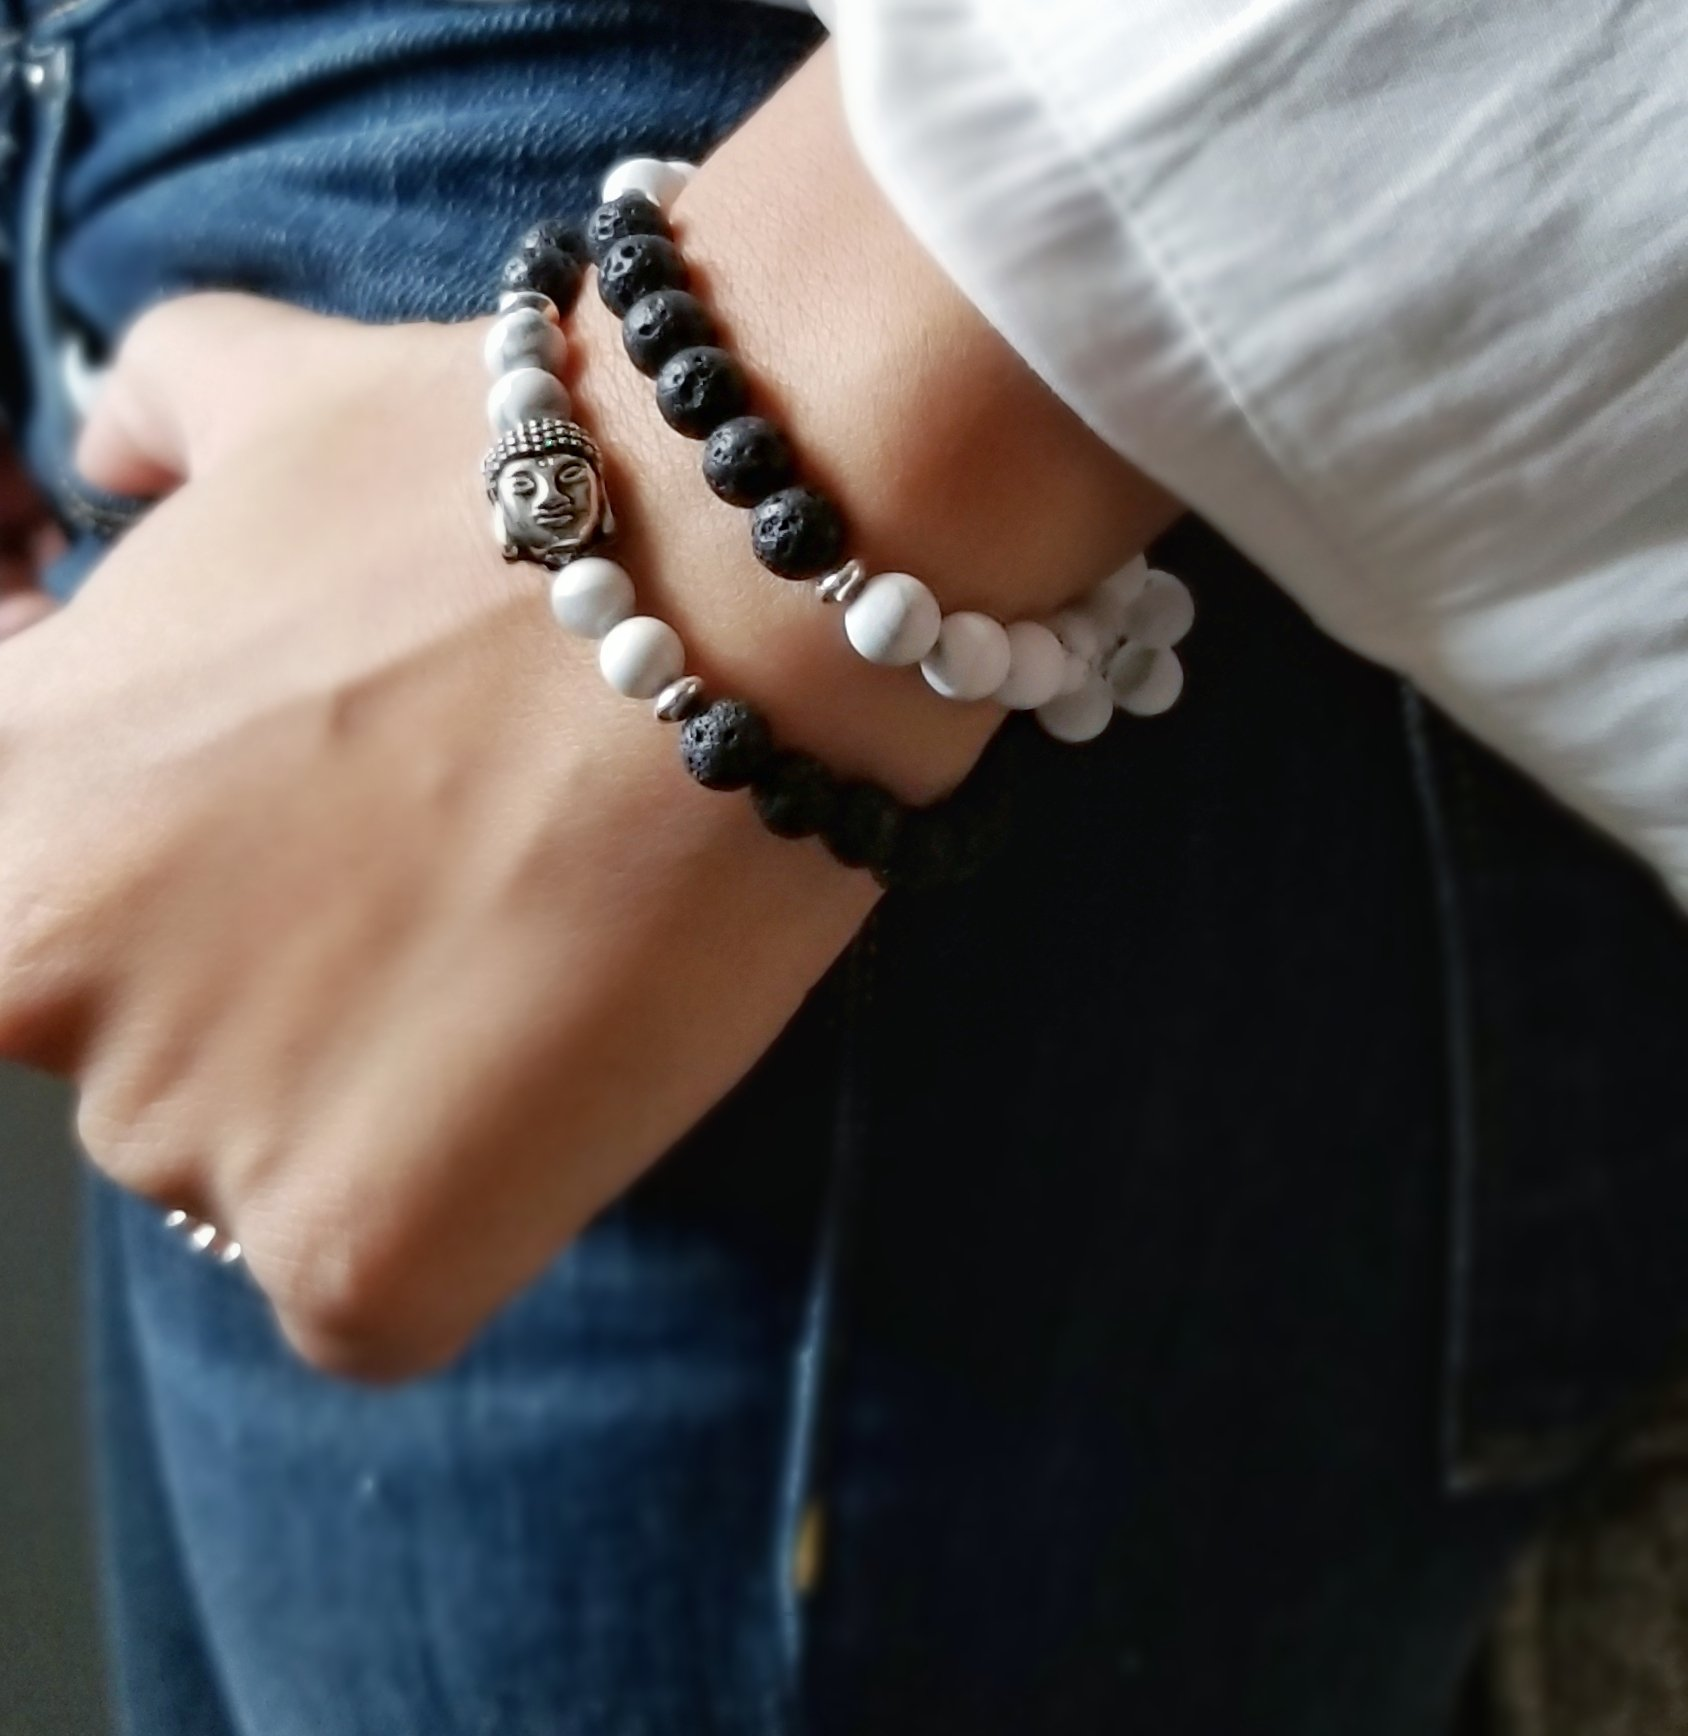 The Find Your Calm and Find Your Calm (Budda) Bracelets - Made with lava stone beads